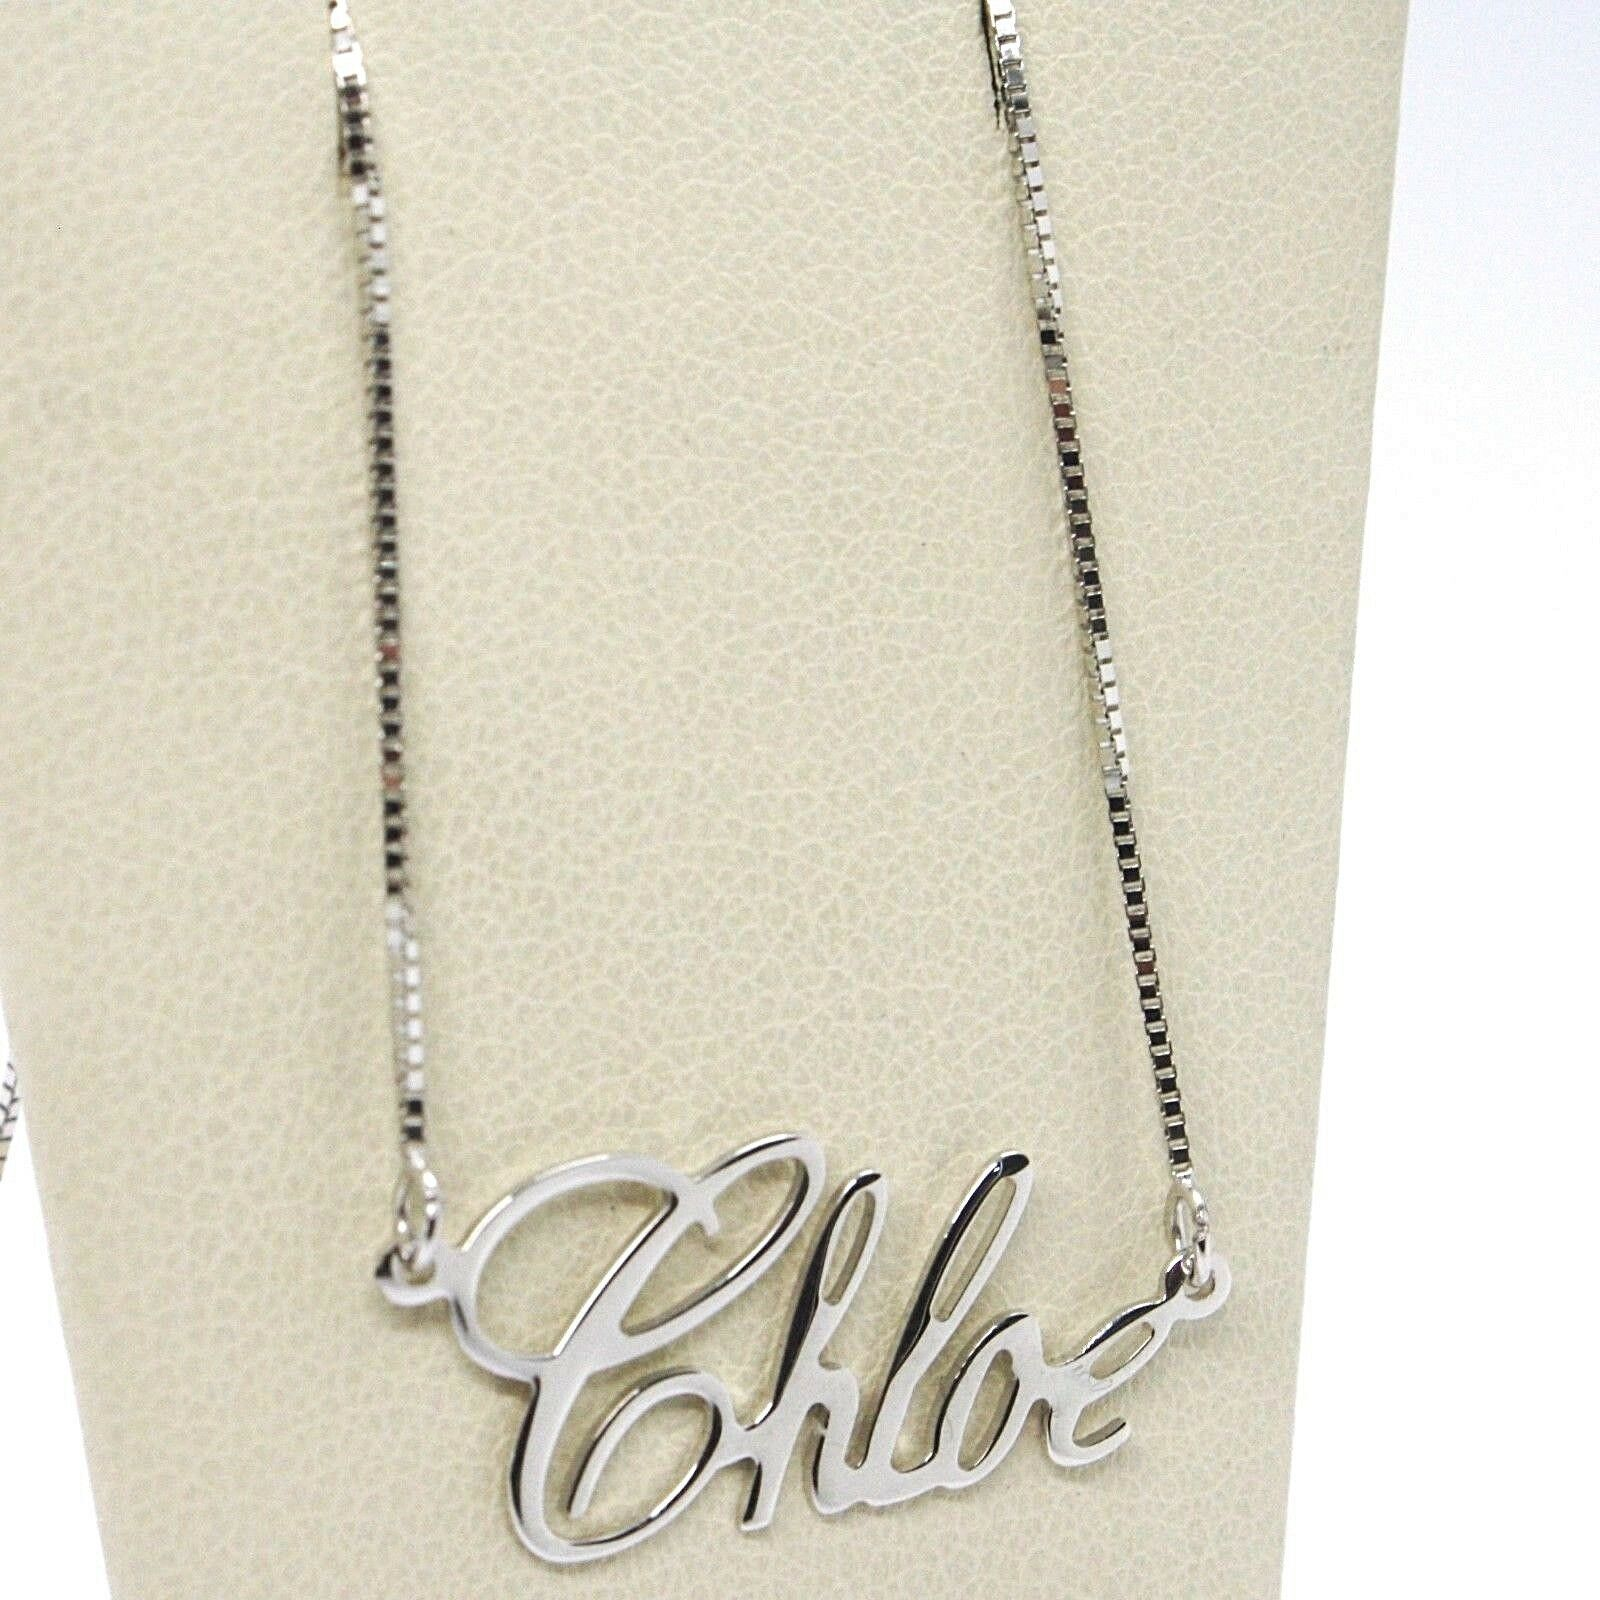 18K WHITE GOLD NAME NECKLACE, CHLOE, AVAILABLE ANY NAME, MADE IN ITALY